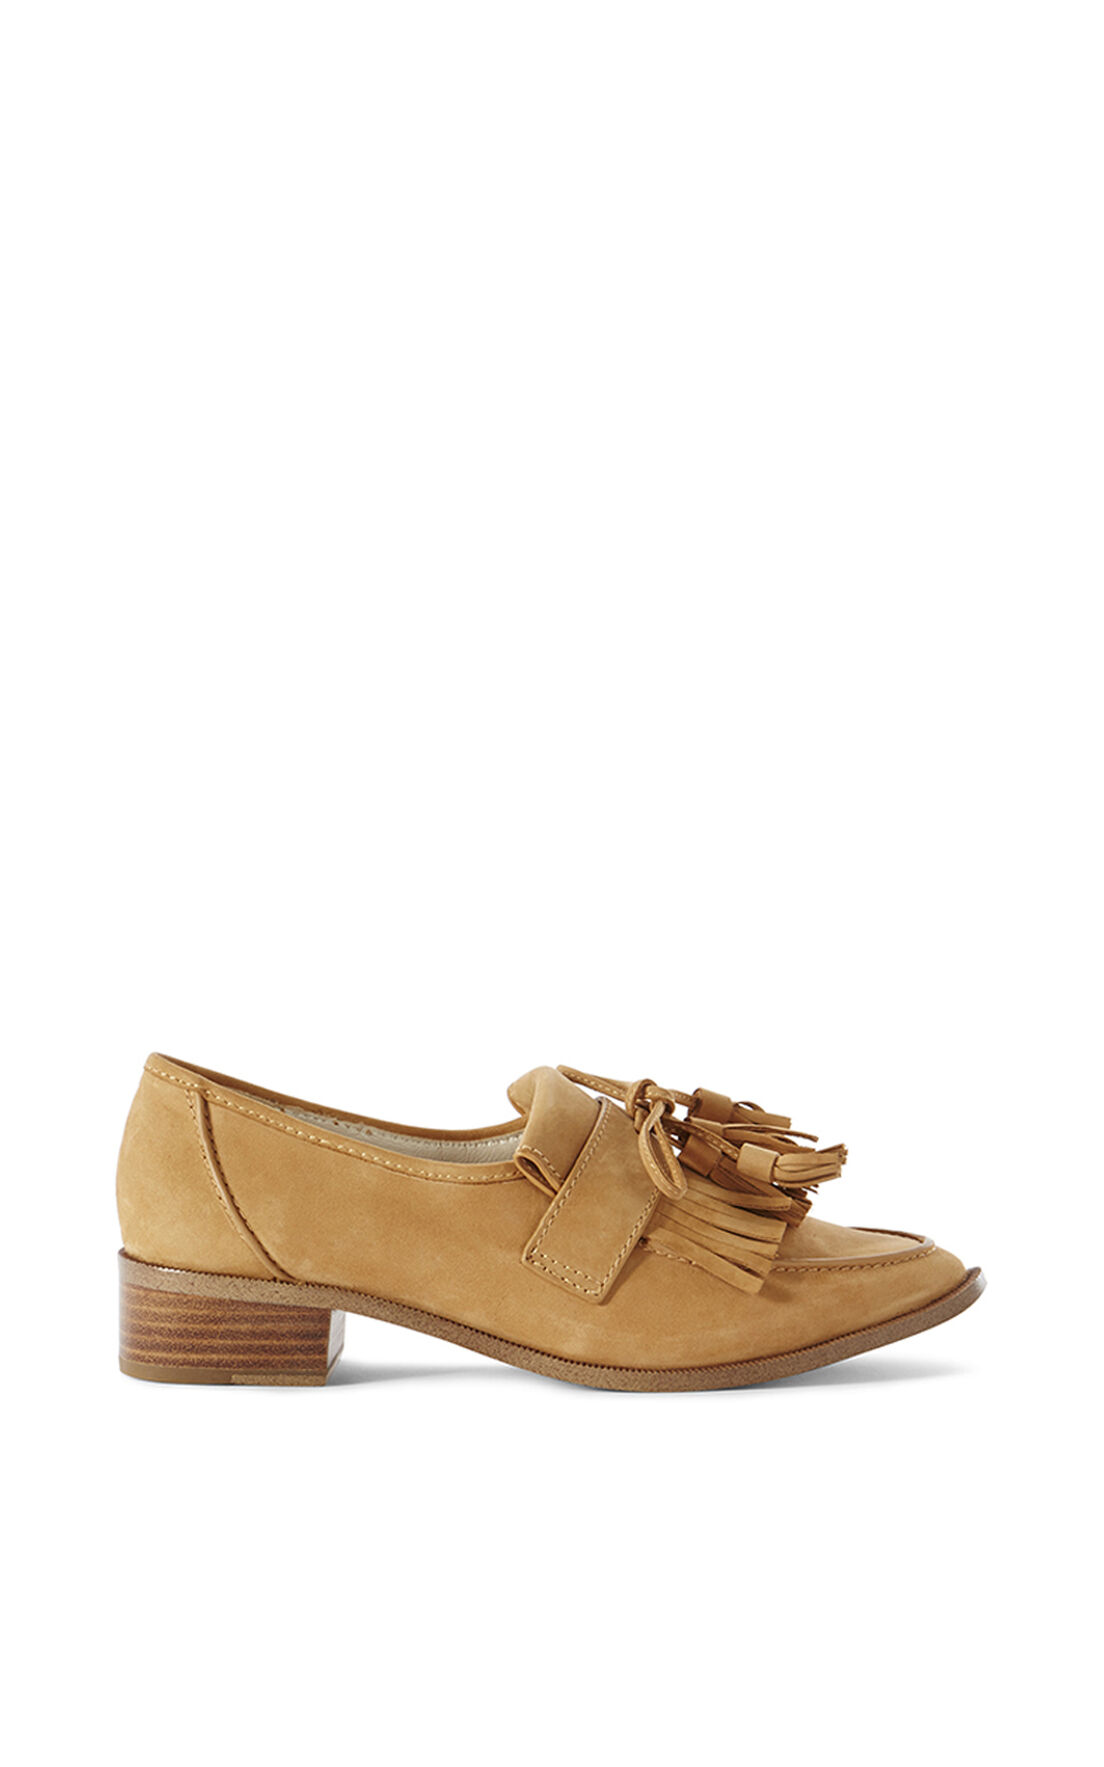 Karen Millen, LEATHER TASSEL LOAFER Camel 0